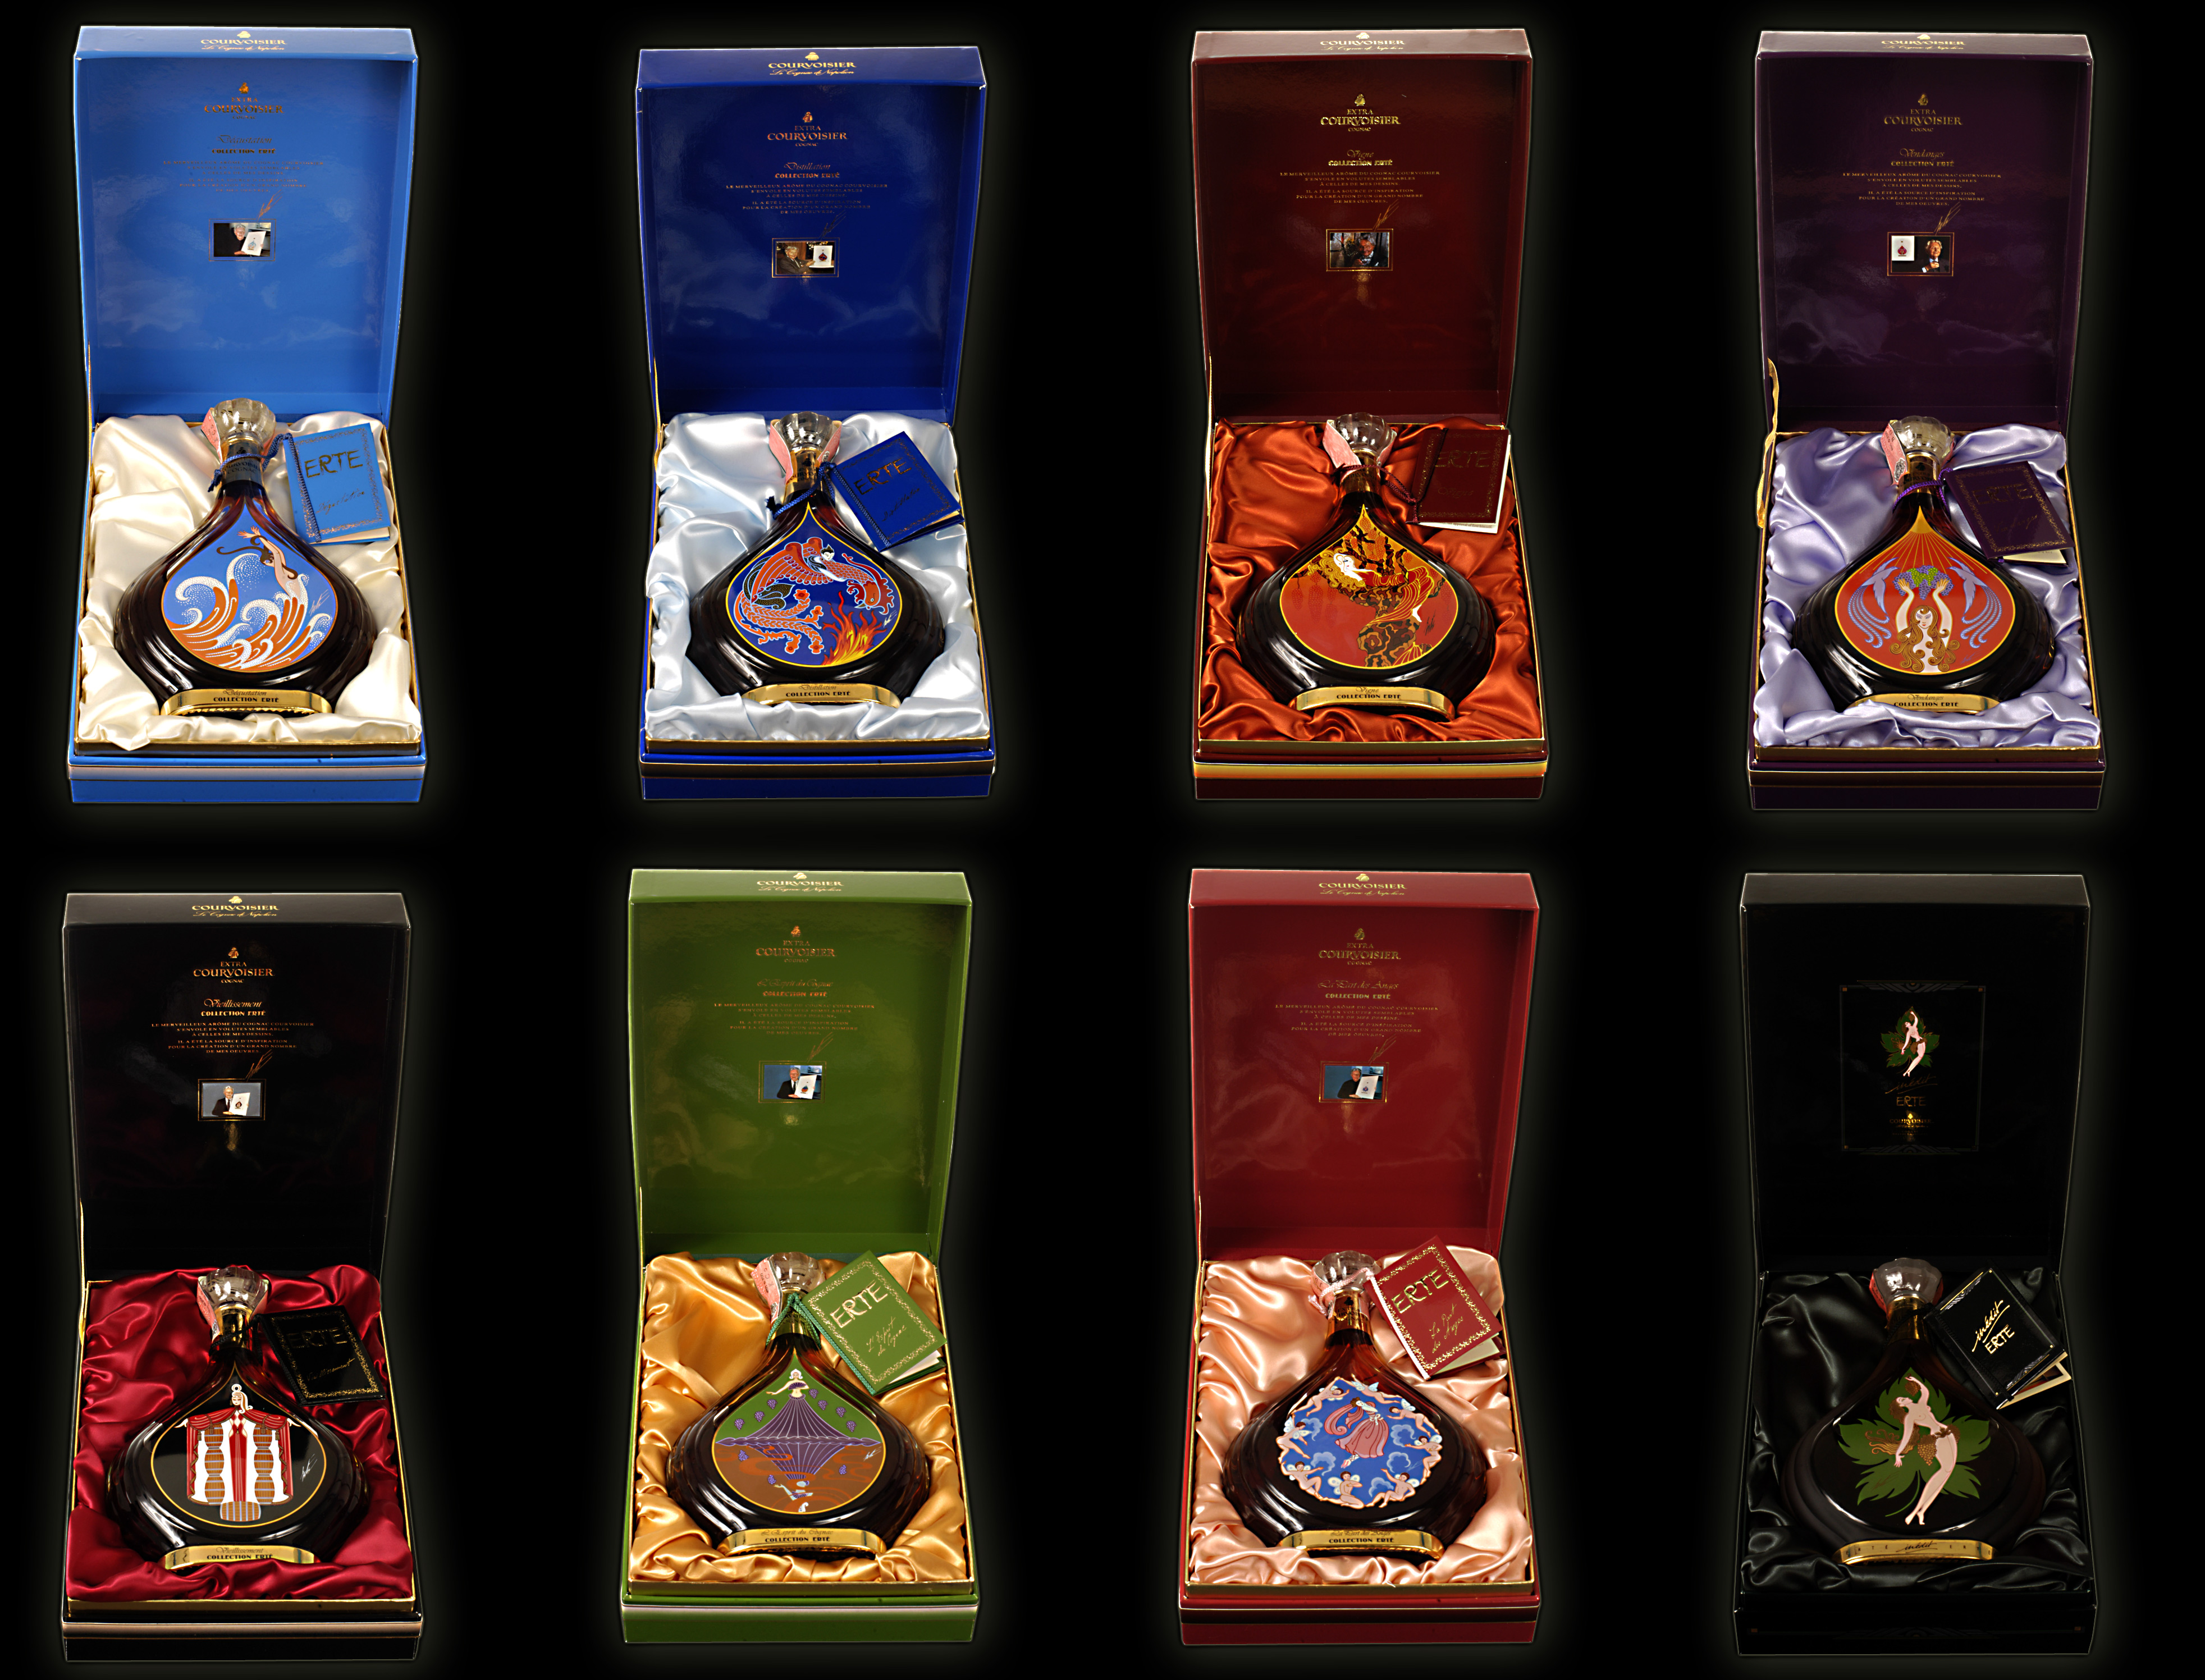 Courvoisier Cognac: Complete Erte Collection